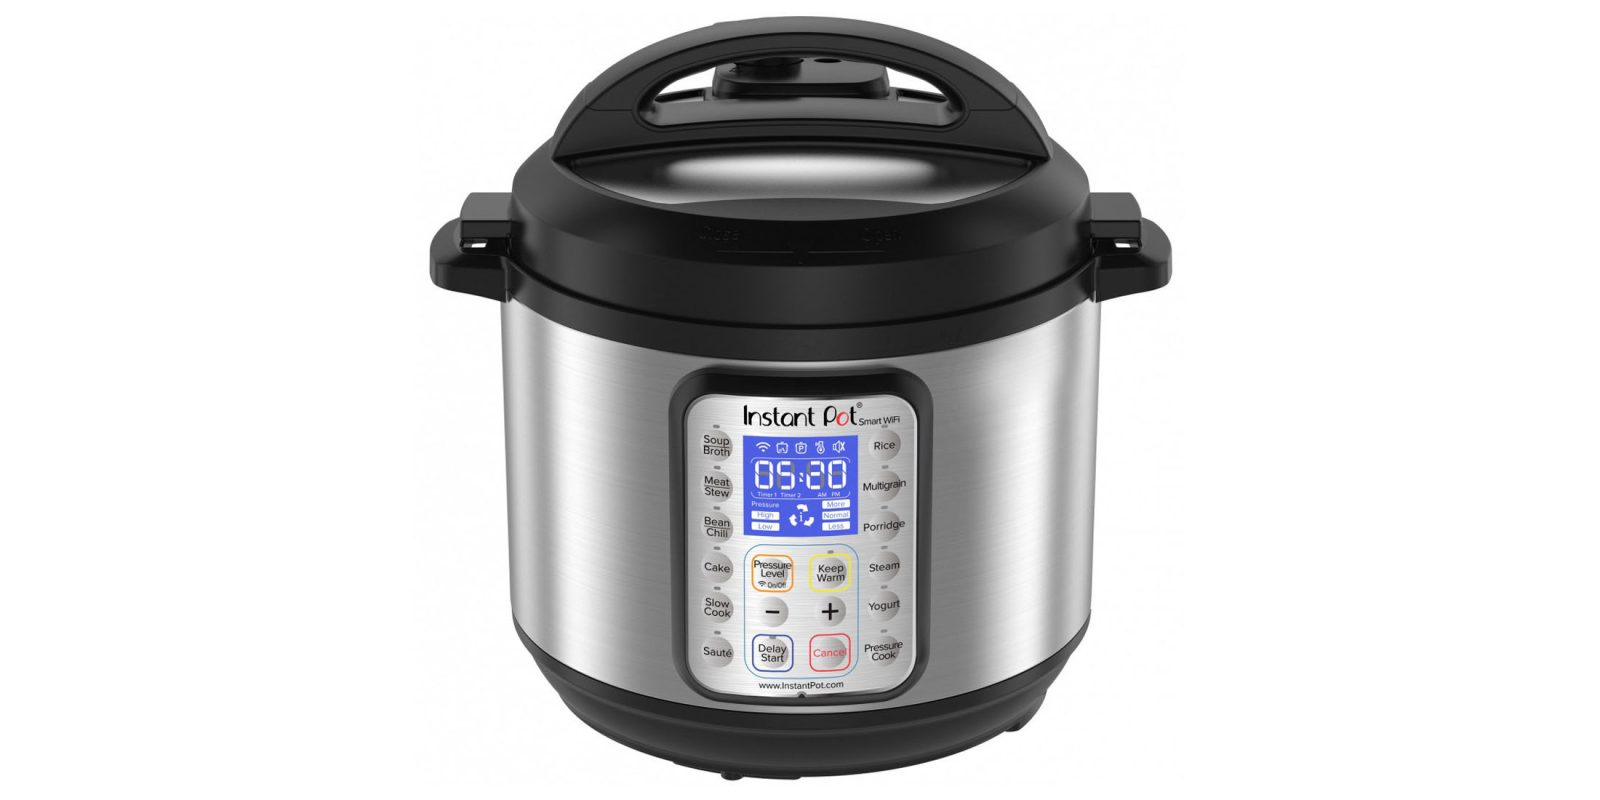 Google Assistant support arrives on Instant Pot Smart WiFi pressure cooker at CES 2019